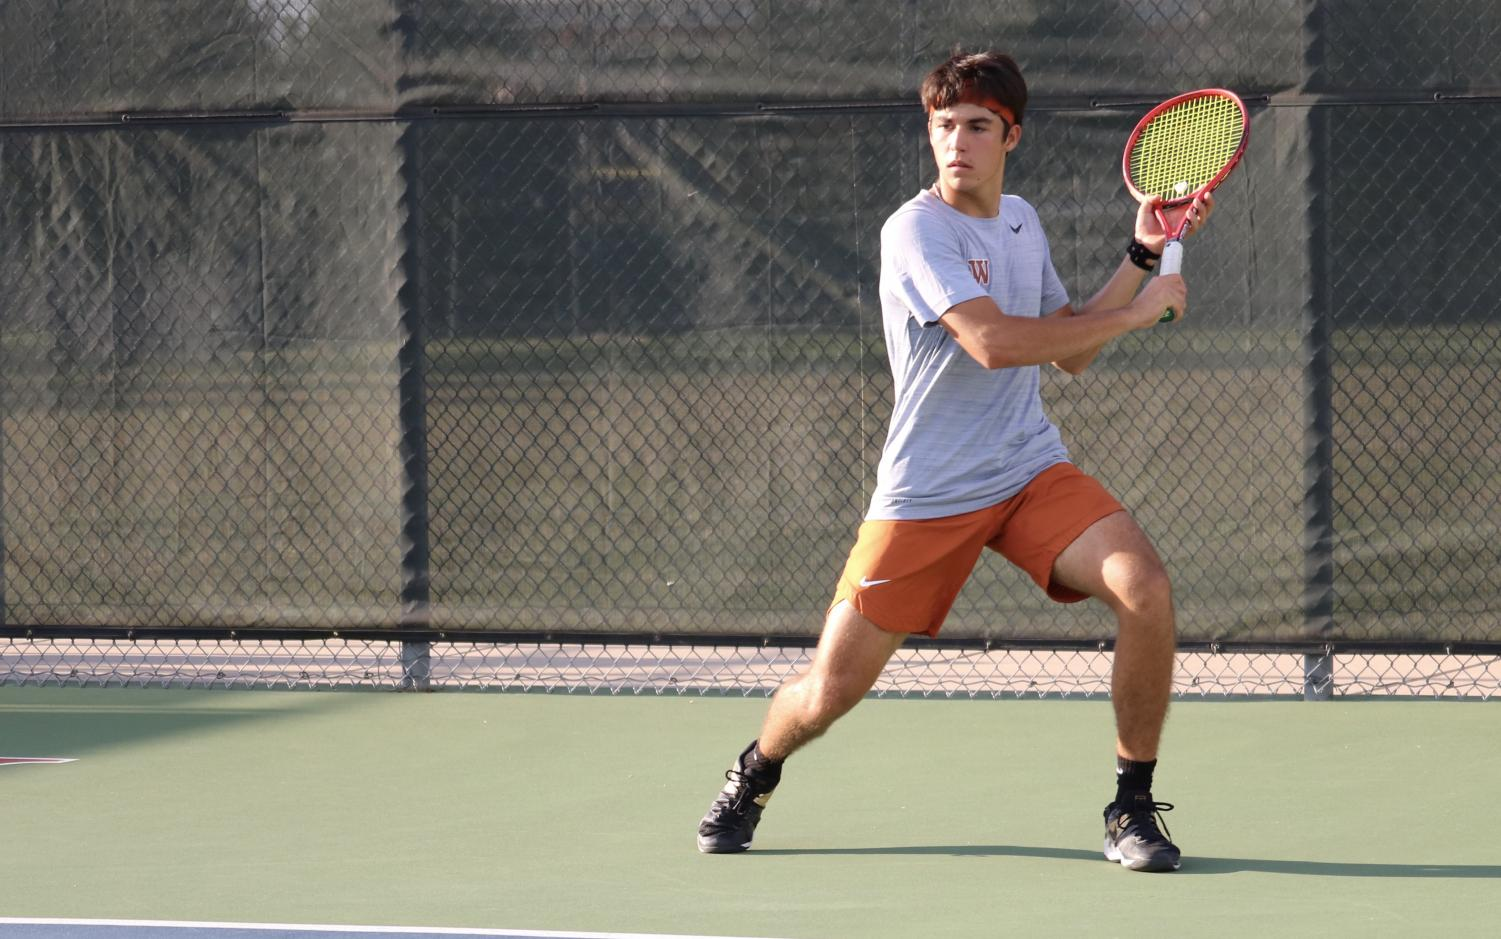 Varsity+Tennis+Secures+11th+District+Title+in+a+Row+with+11-1+Victory+over+Vandegrift